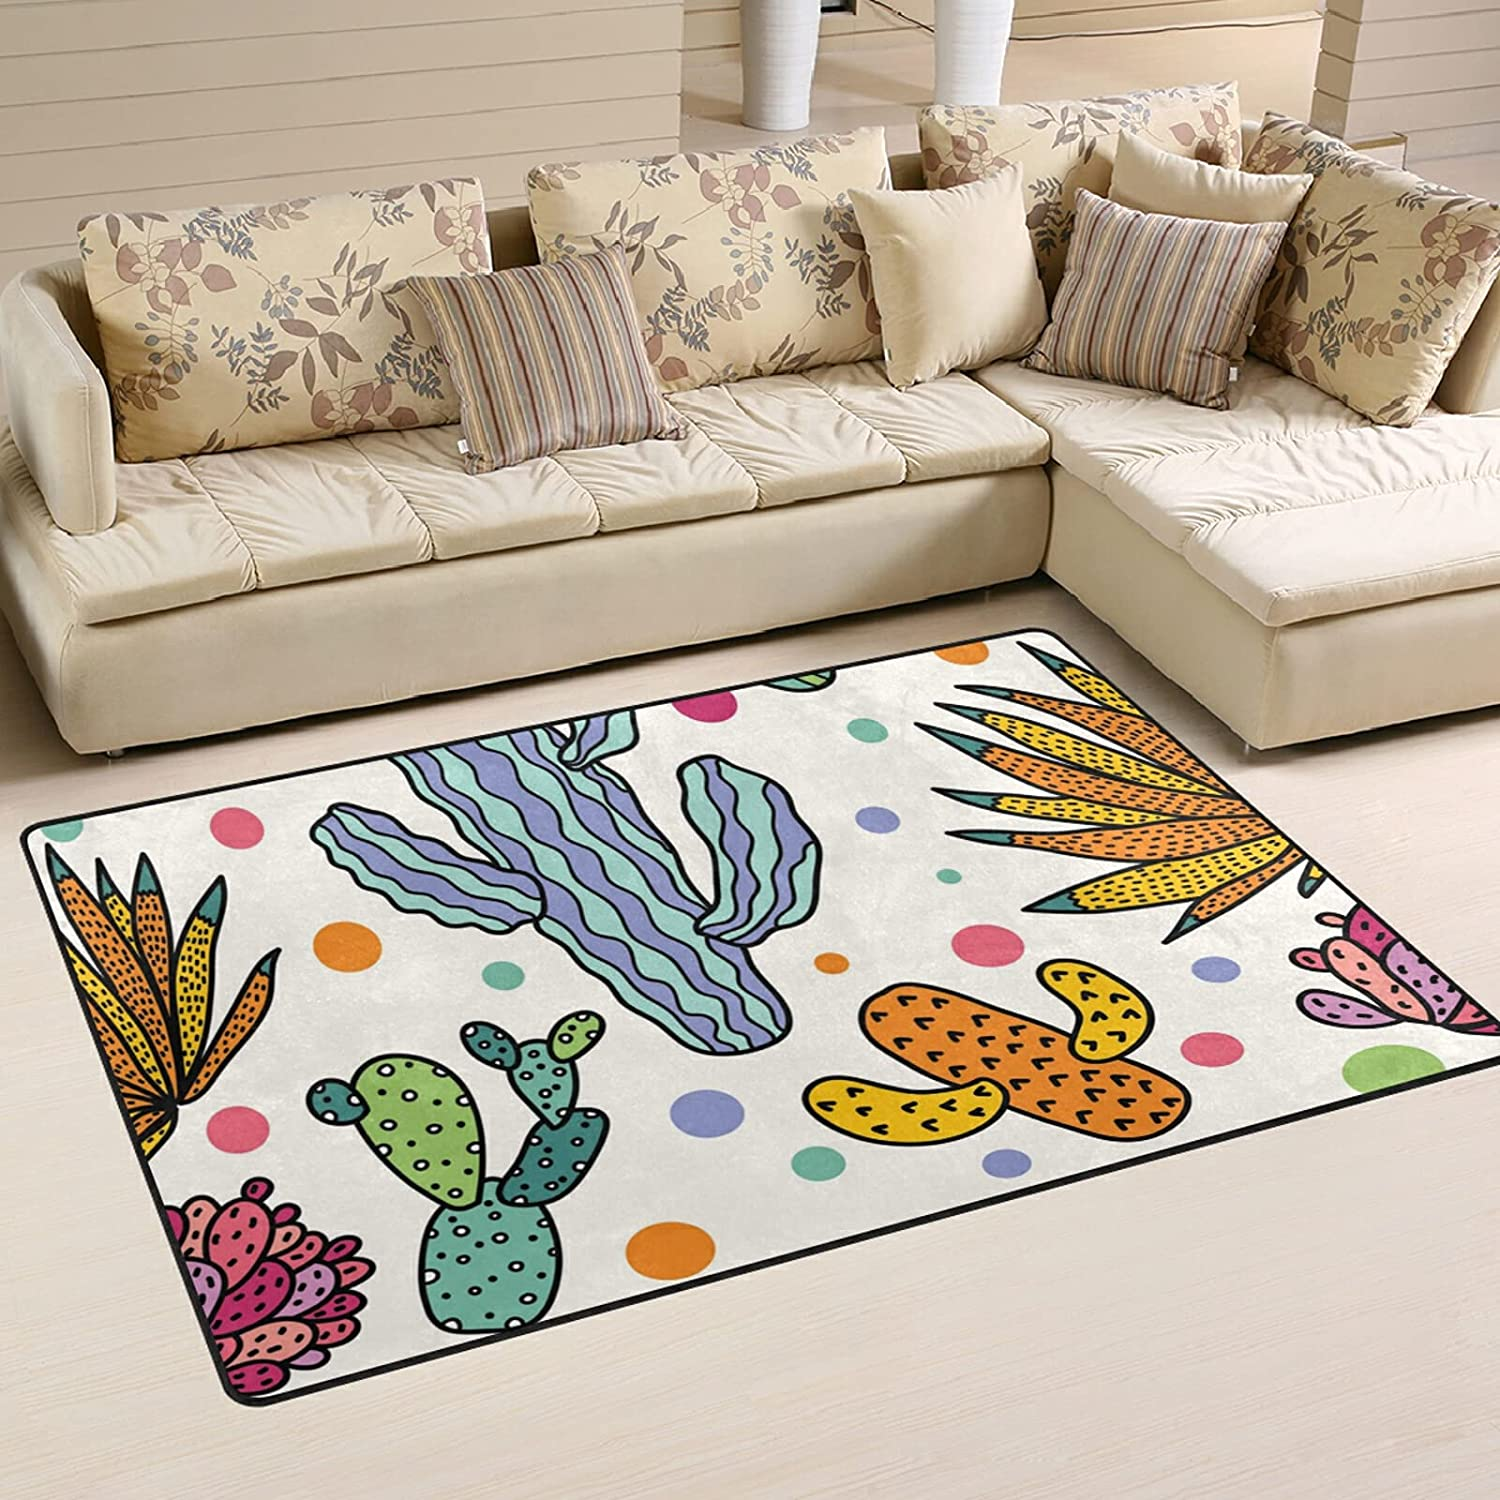 Cute Colorful Free Shipping New Cactus Large Soft Area Rug Rugs Playmat Max 58% OFF Ma Nursery